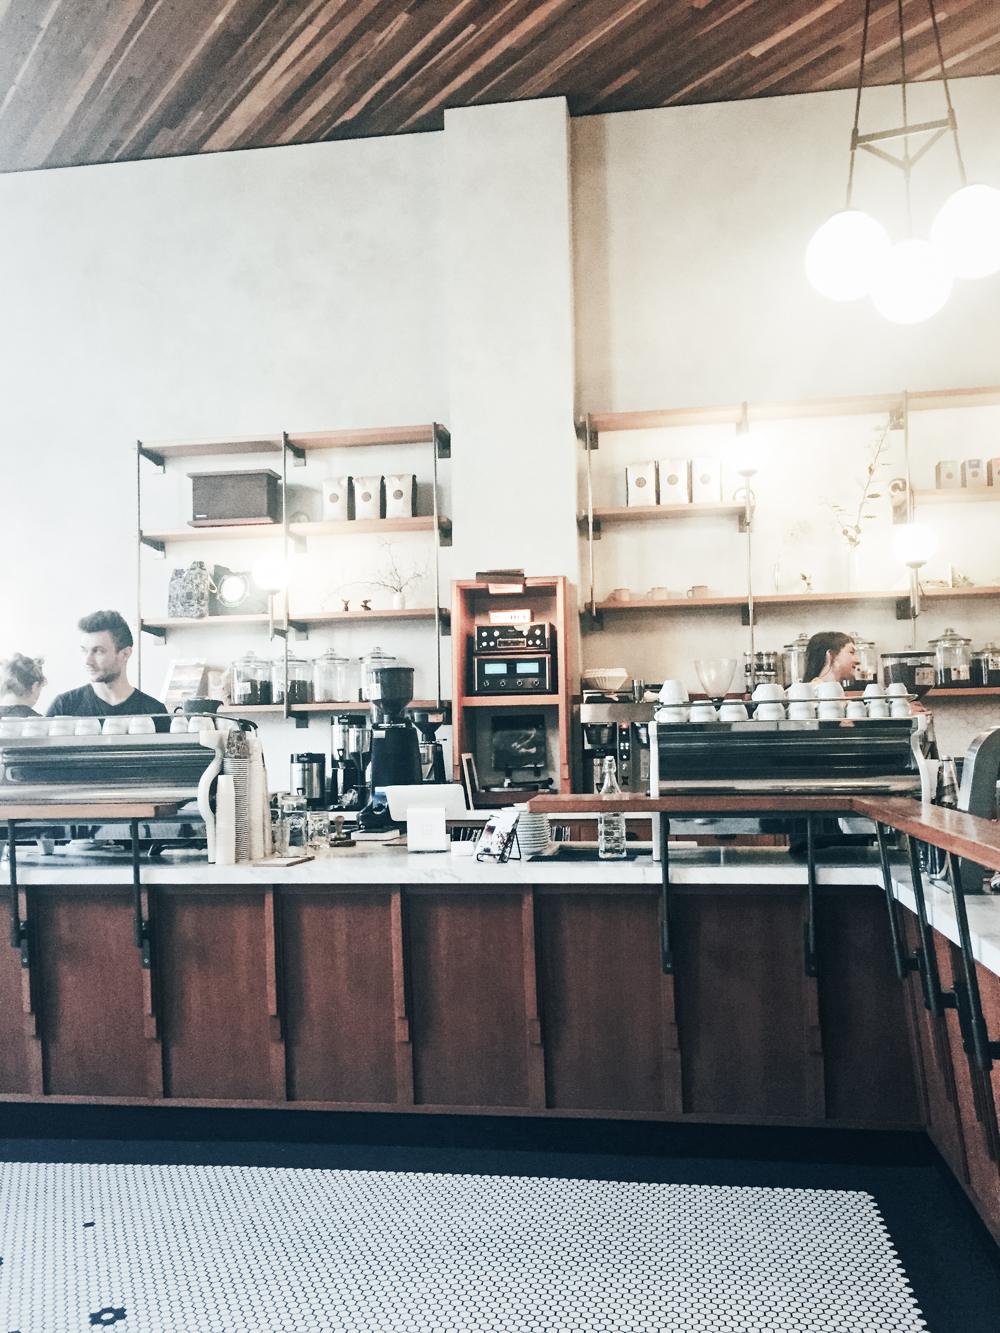 Sightglass Coffee Shop in San Francisco's Mission District | tintedgreen